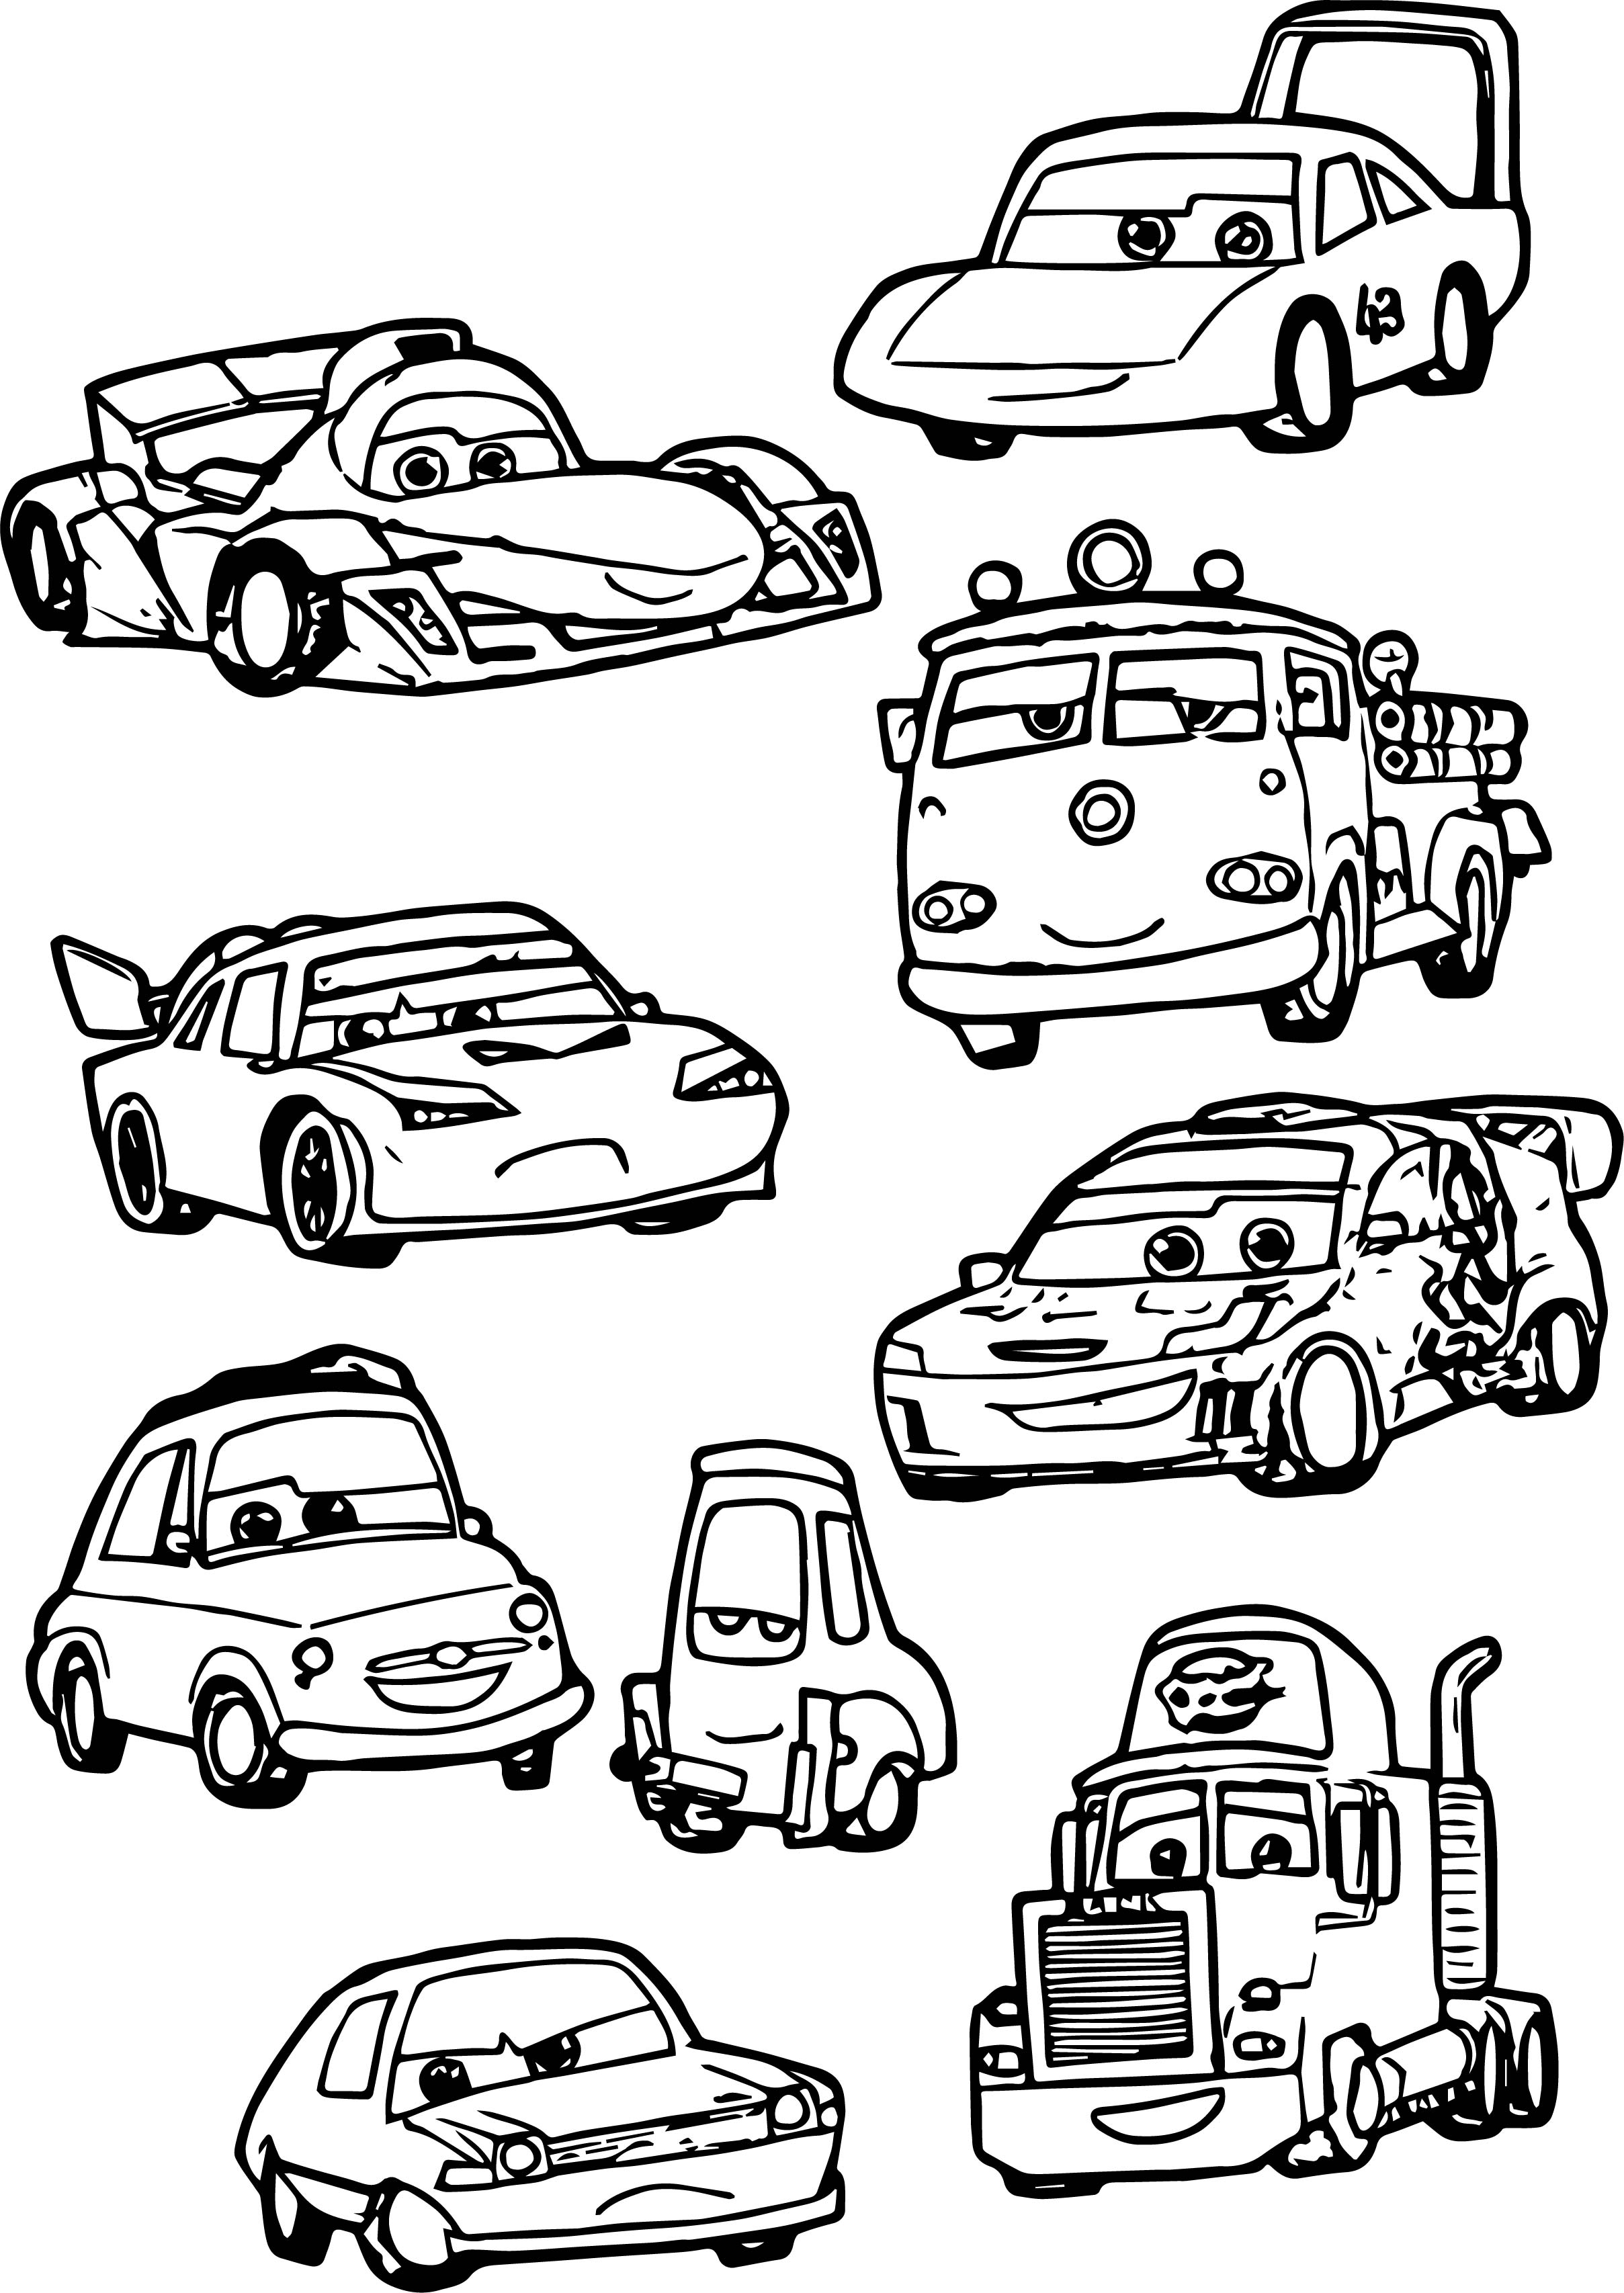 28 Just Married Car Coloring Pages Get Coloring Pages Just